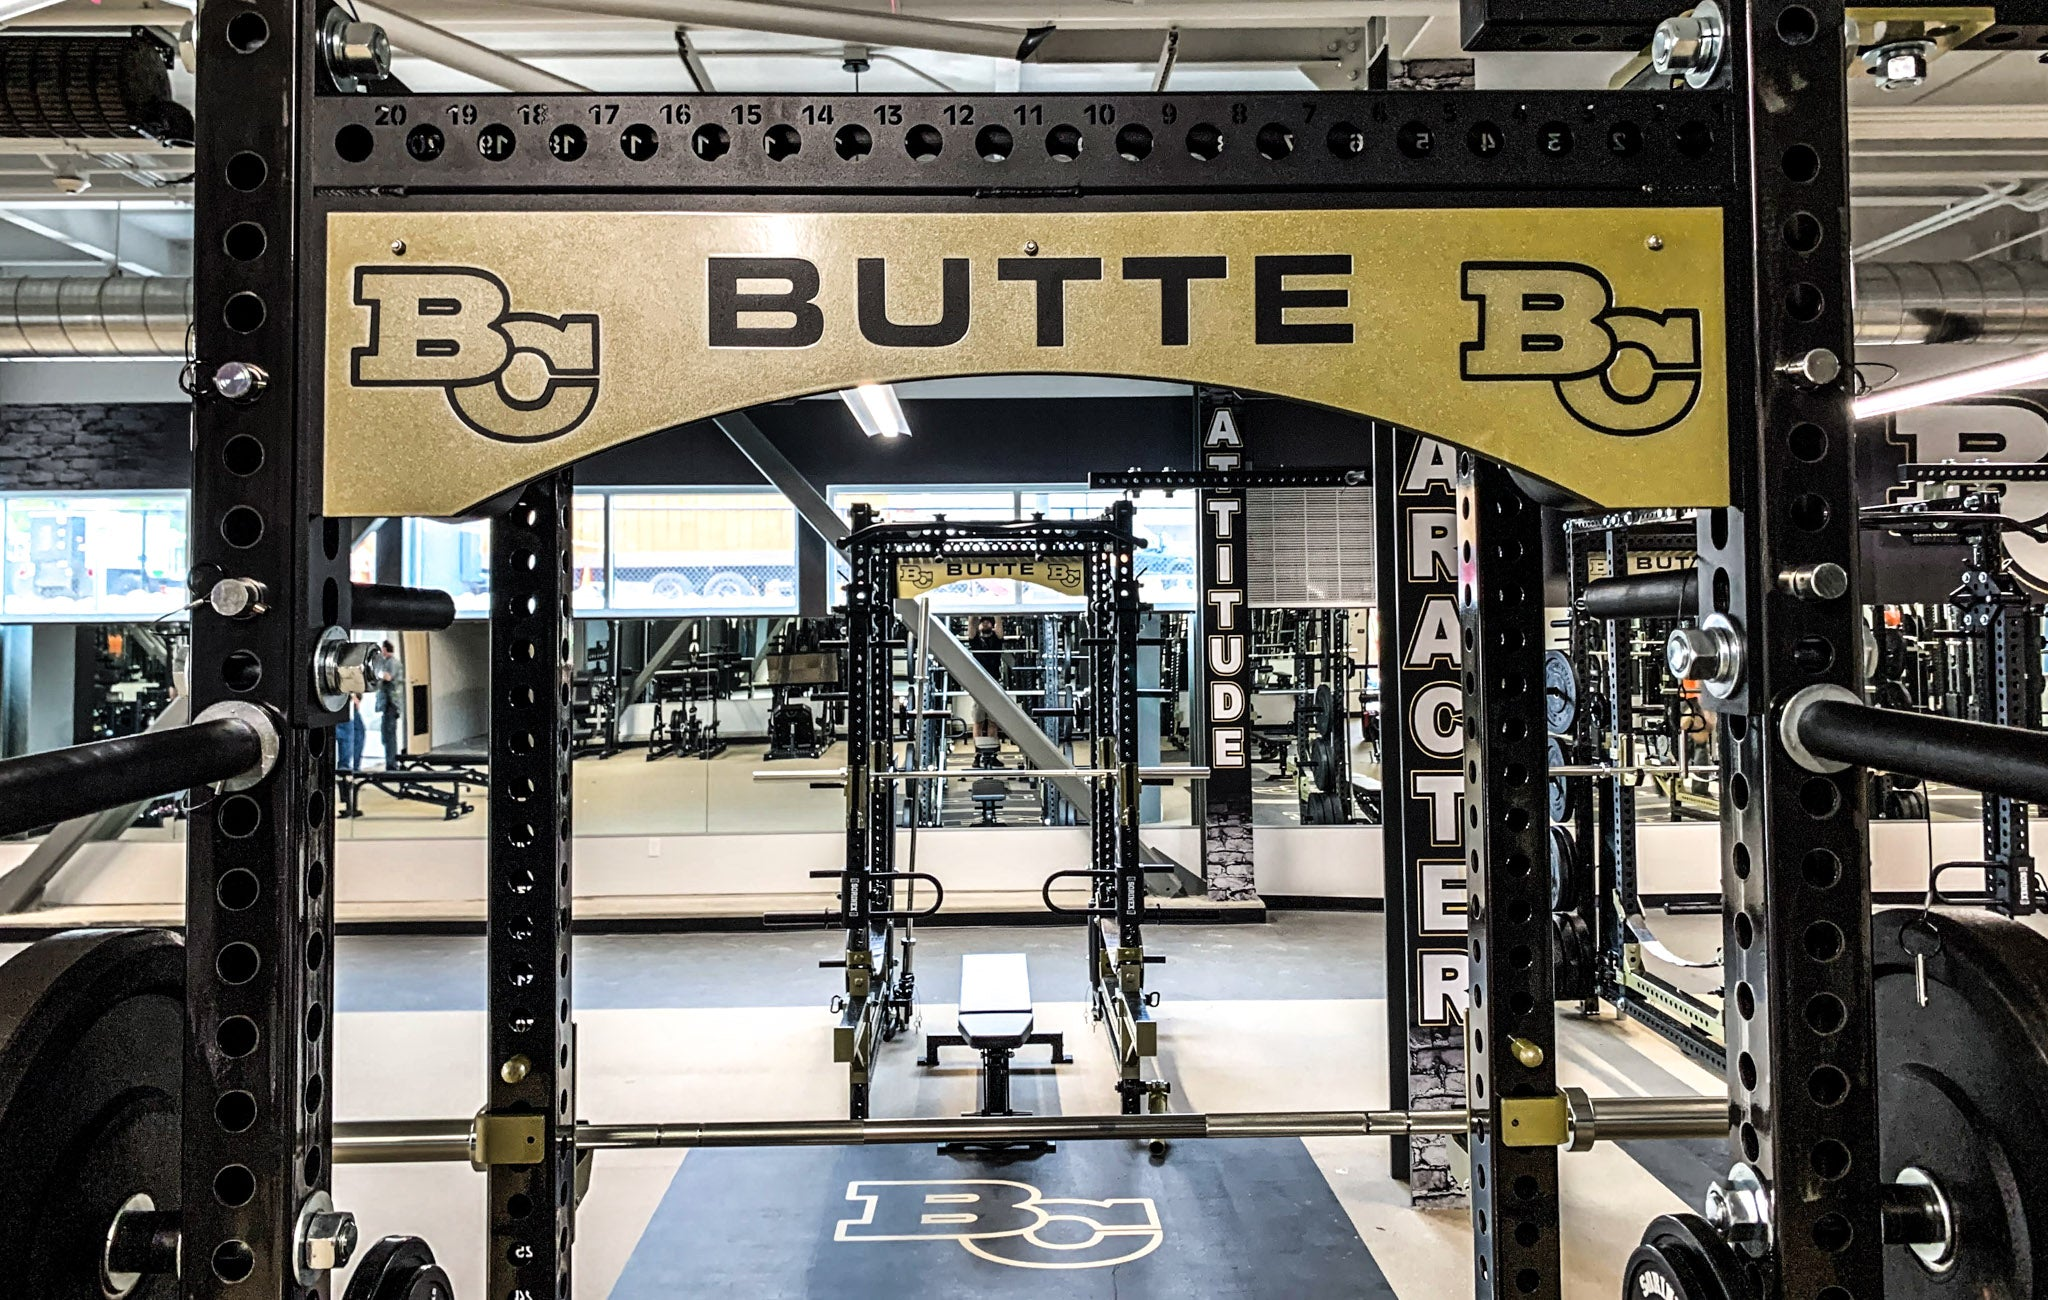 Butte Community College Football strength and conditioning